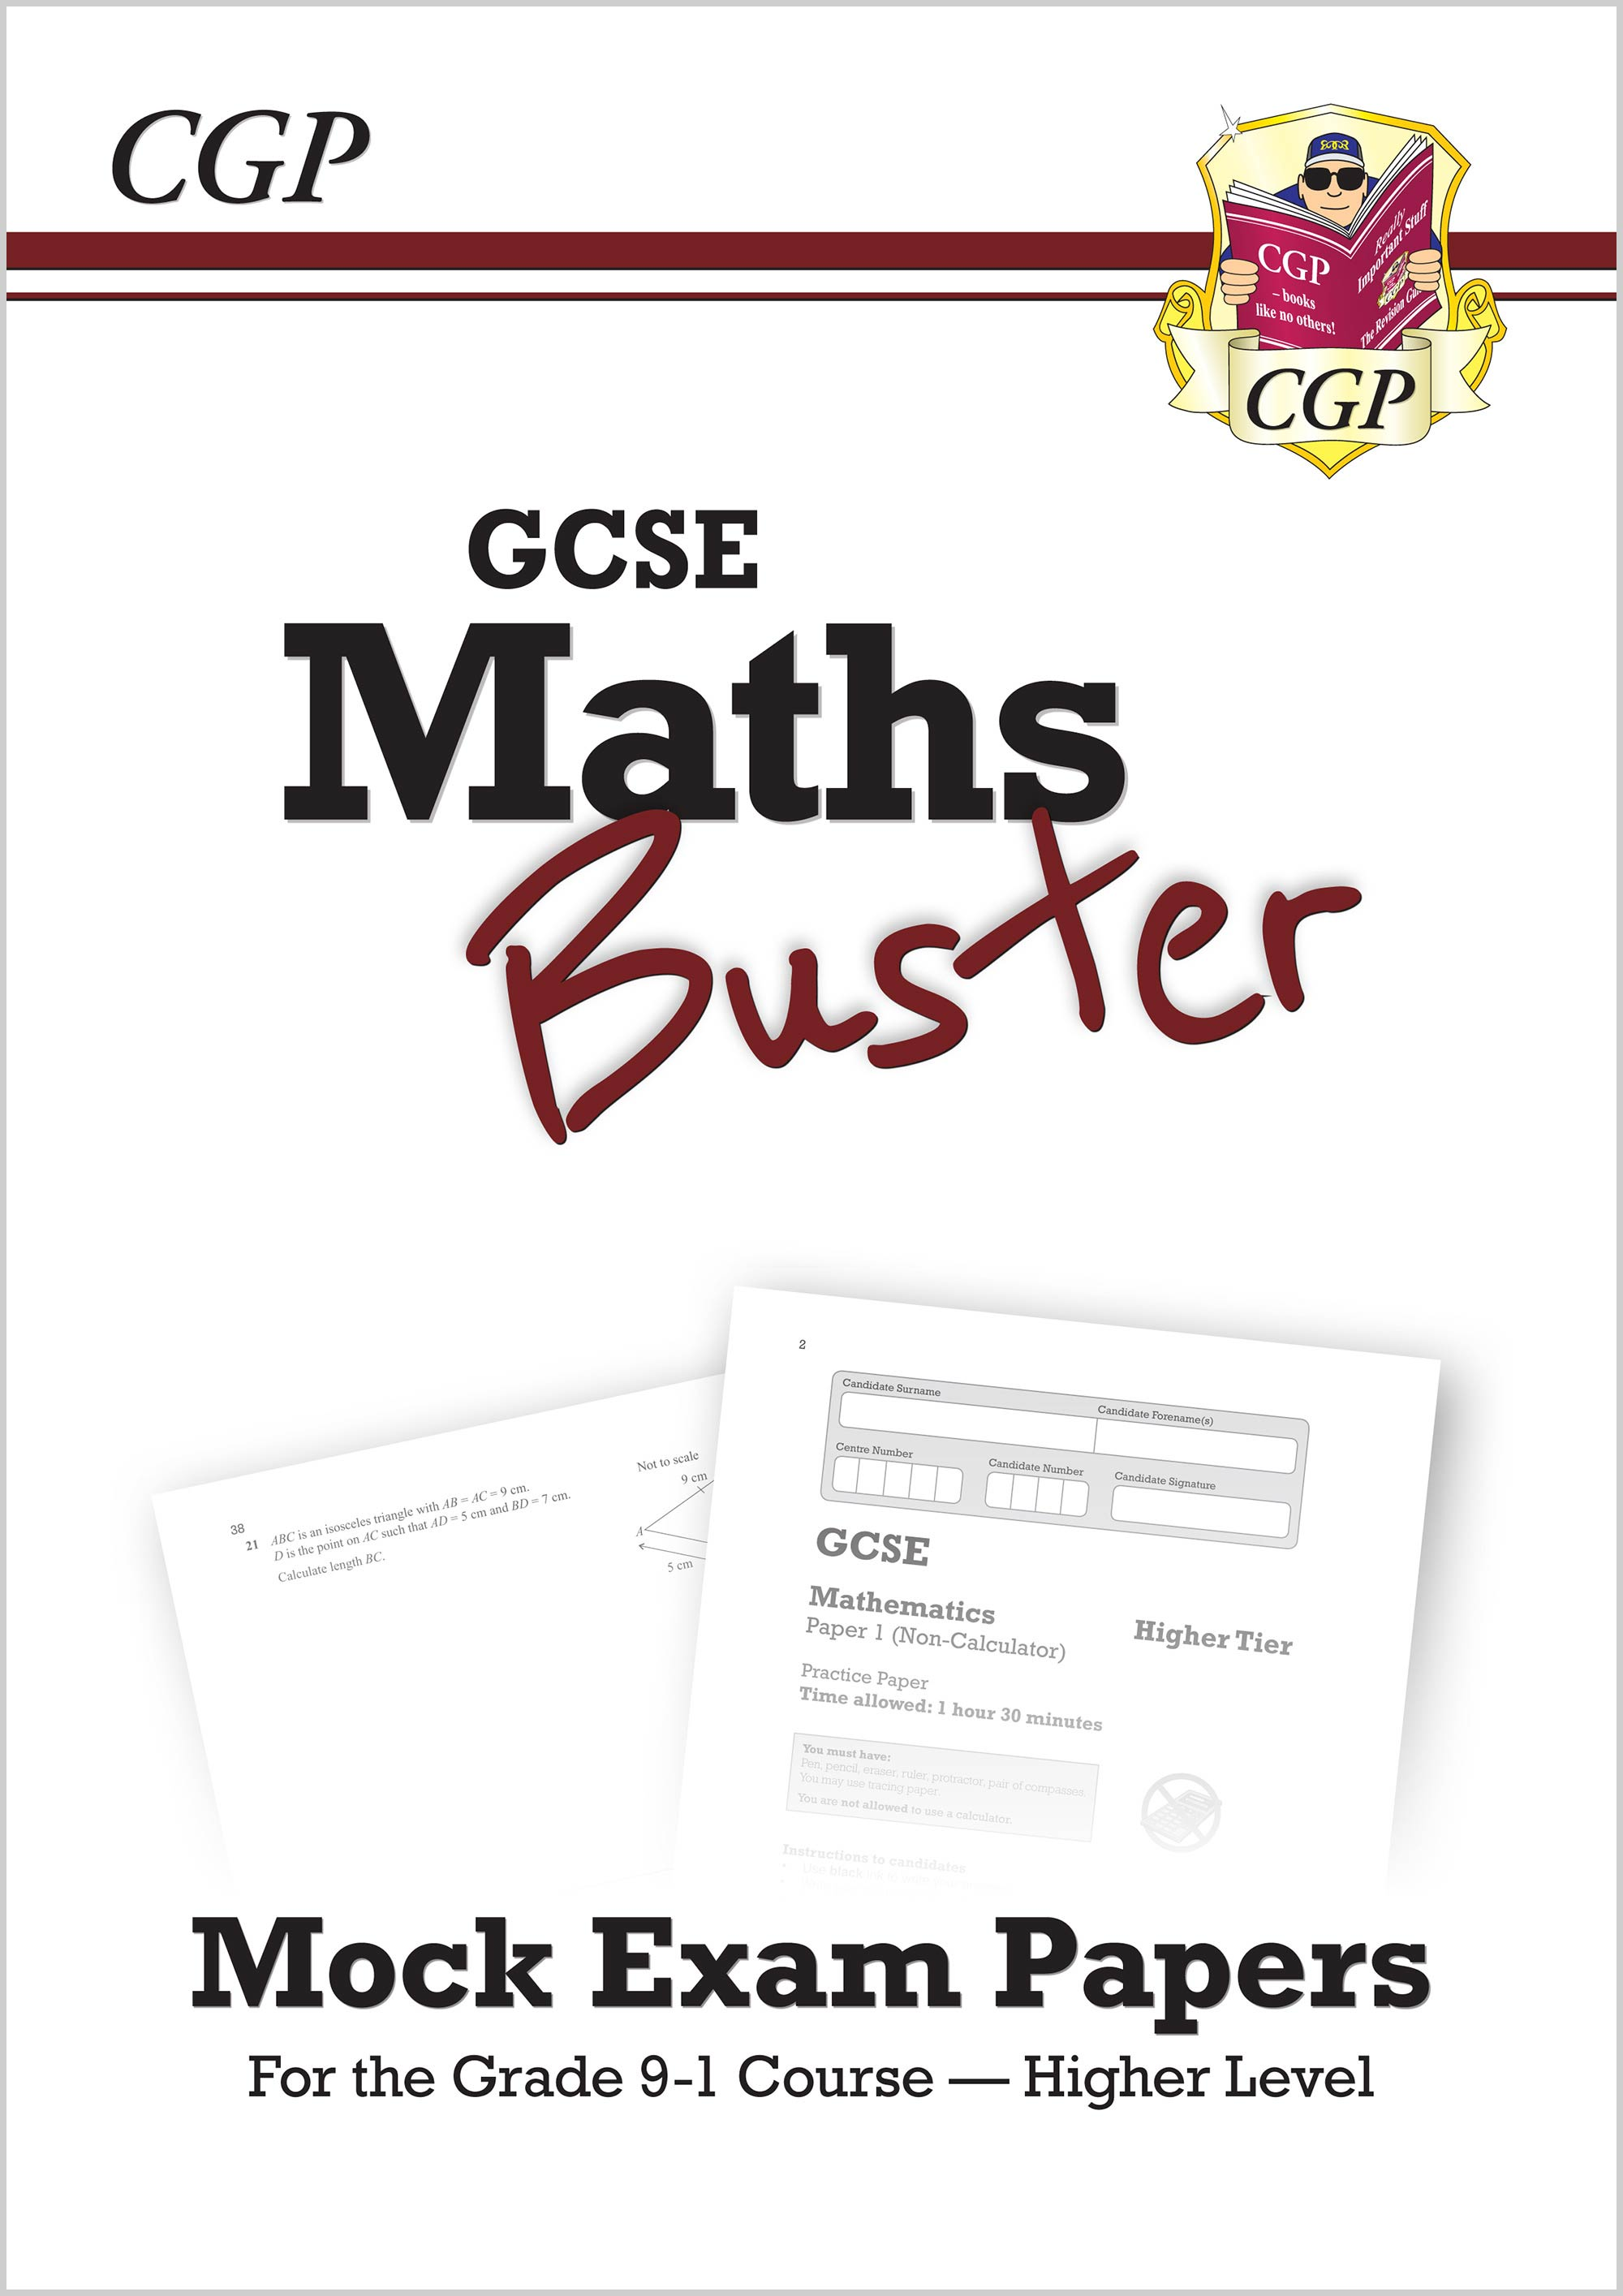 42MBHQ - MathsBuster: GCSE Maths Mock Exam Paper Book (Grade 9-1 Course) - Higher